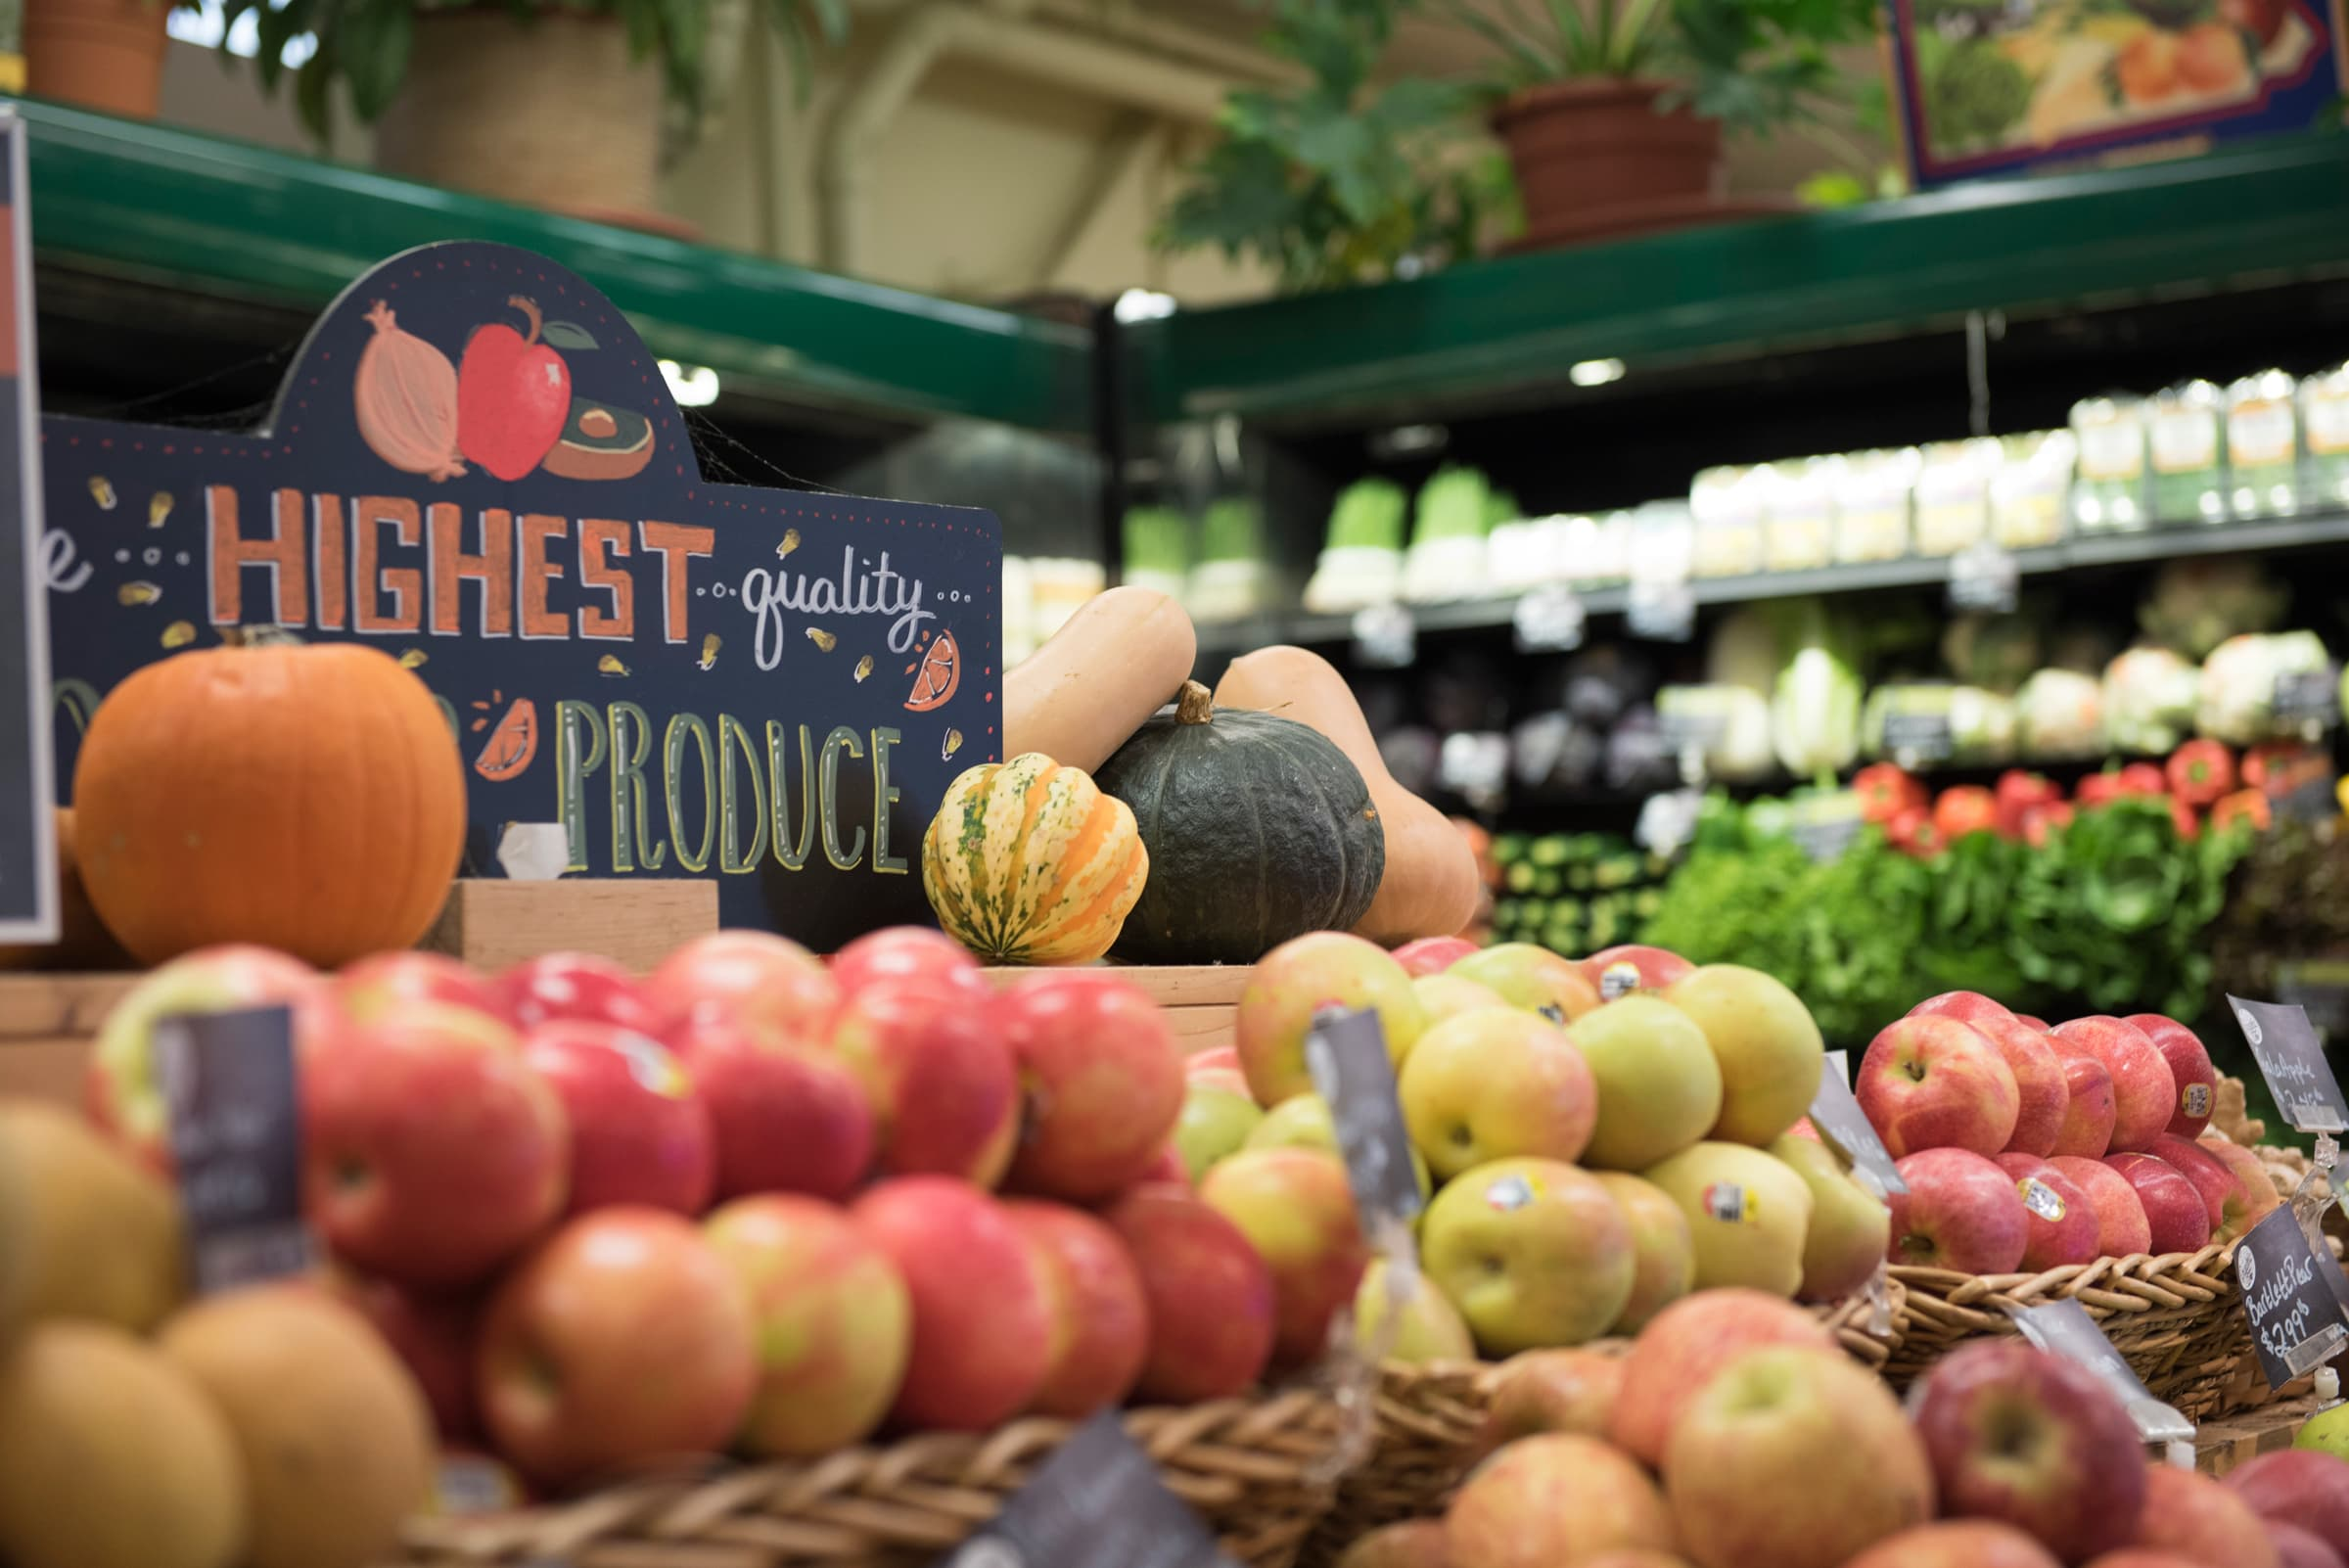 Photo of grocery store produce section showing a variety of fruits and vegetables.